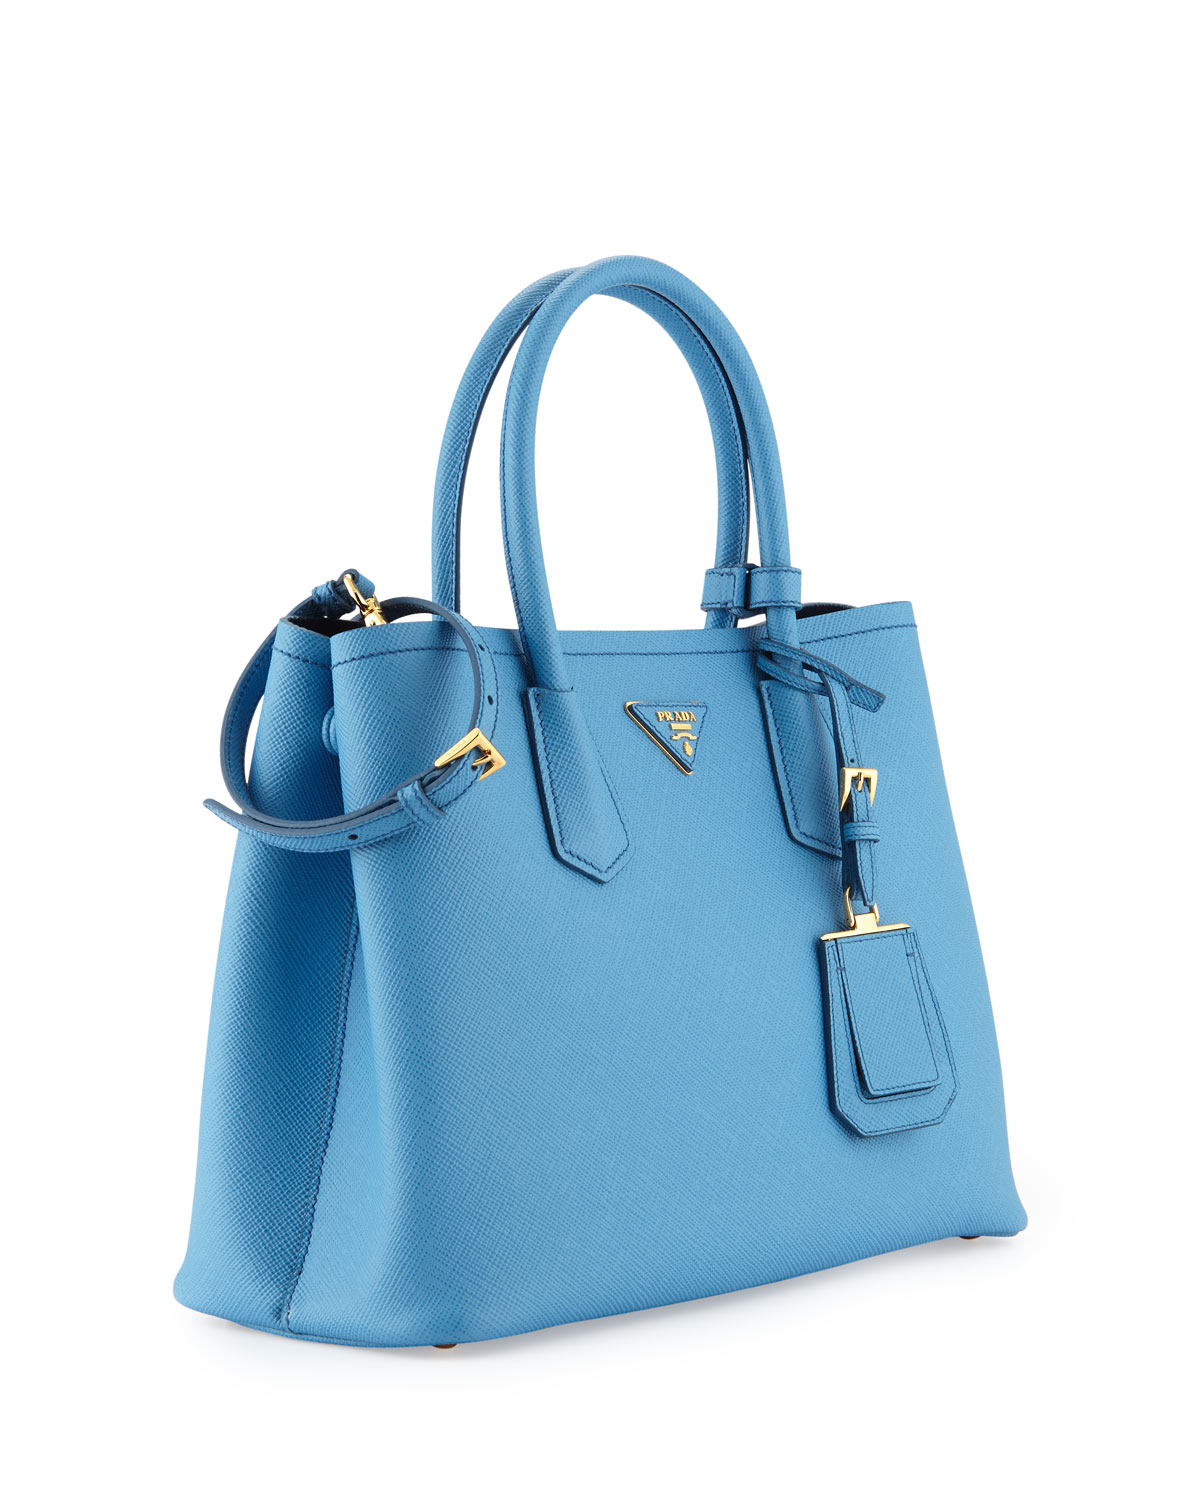 prada crossbody satchel - Prada Saffiano Cuir Double Small Tote Bag in Blue (MARE/BLUETTE ...